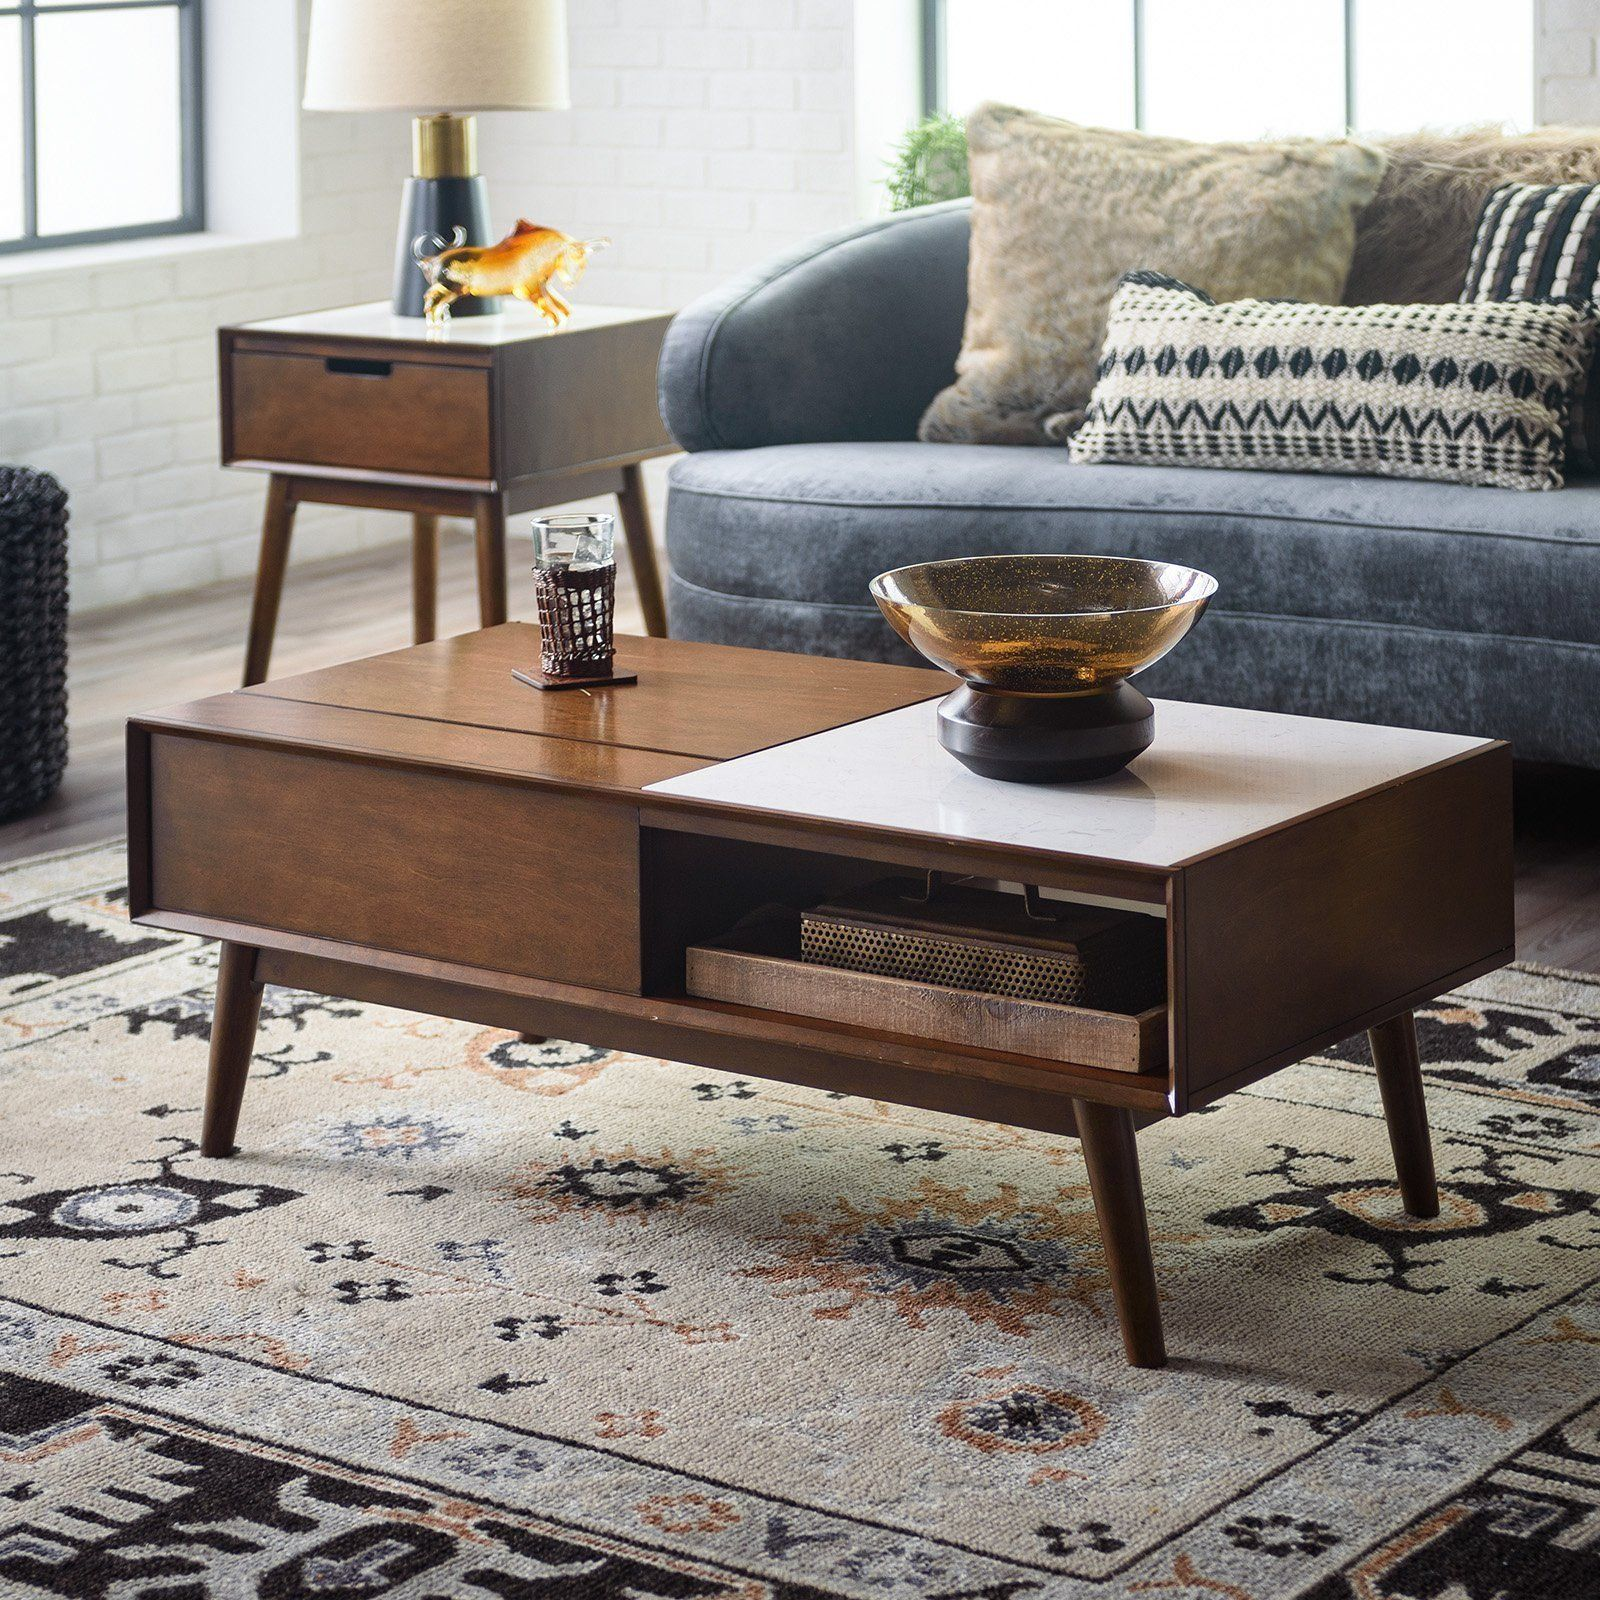 Bring The Timeless Elegance Of Mid Century Modern Style Home With